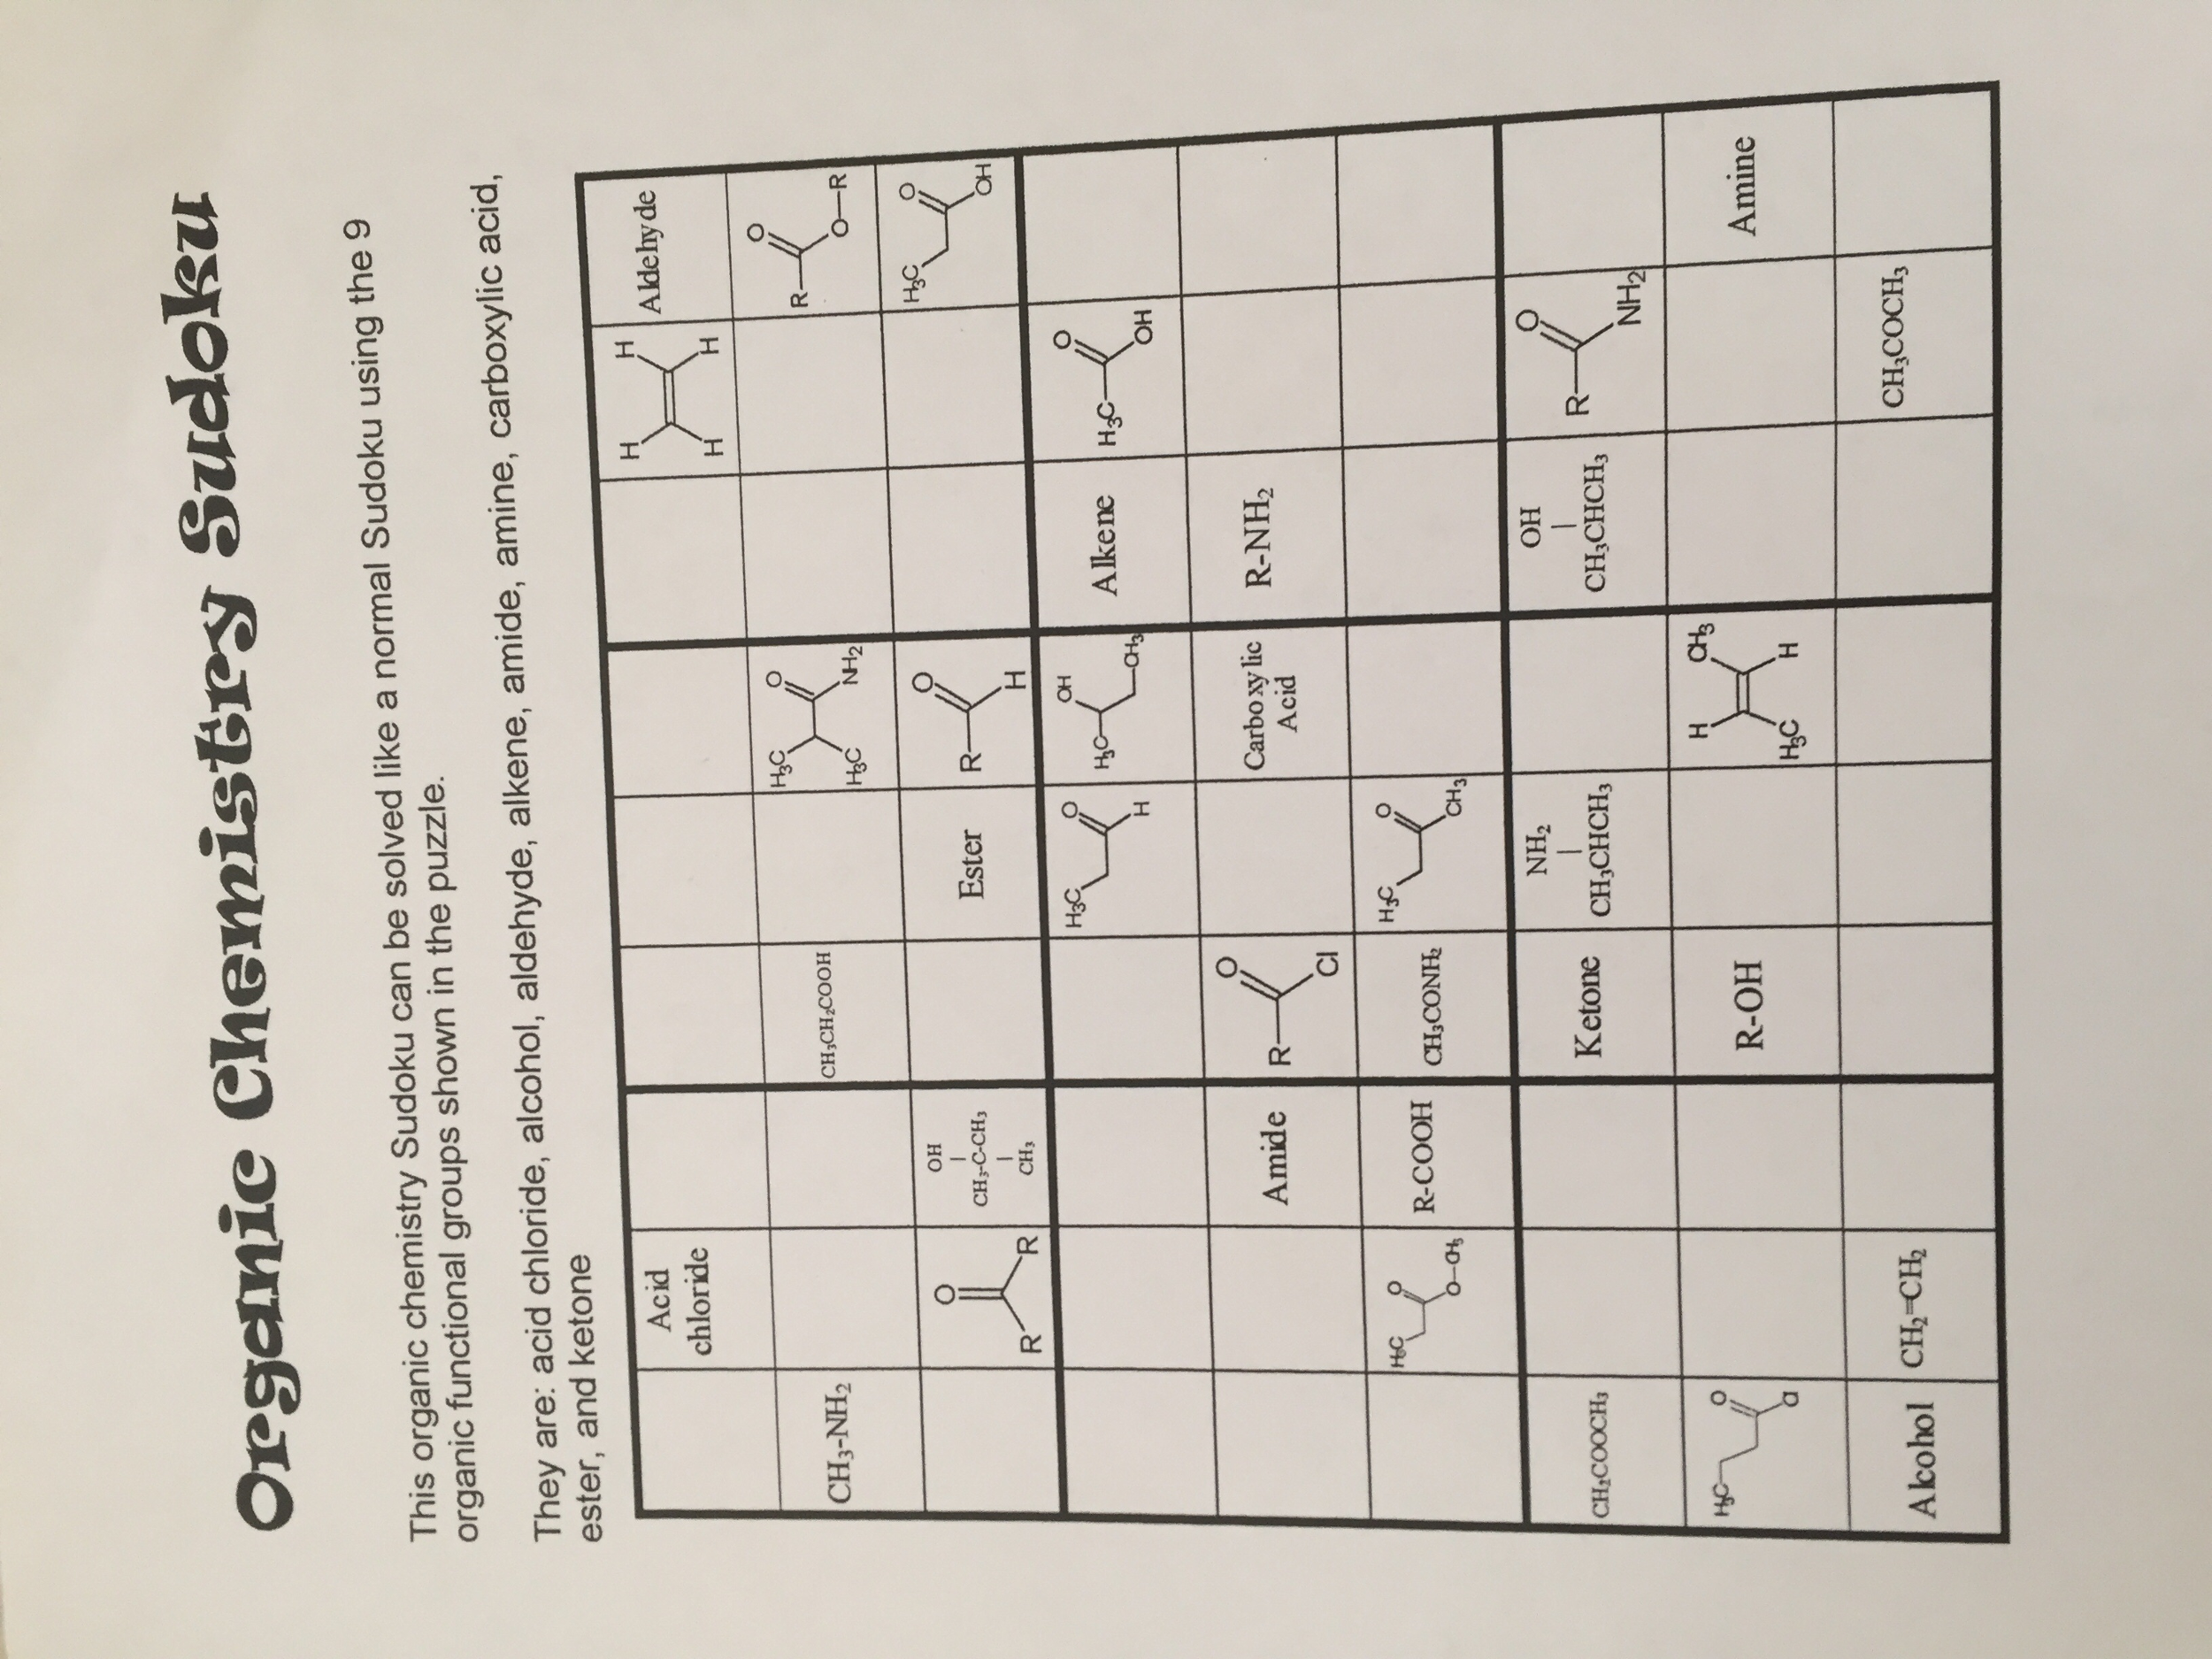 solved this organic chemistry sudoku can be solved like a